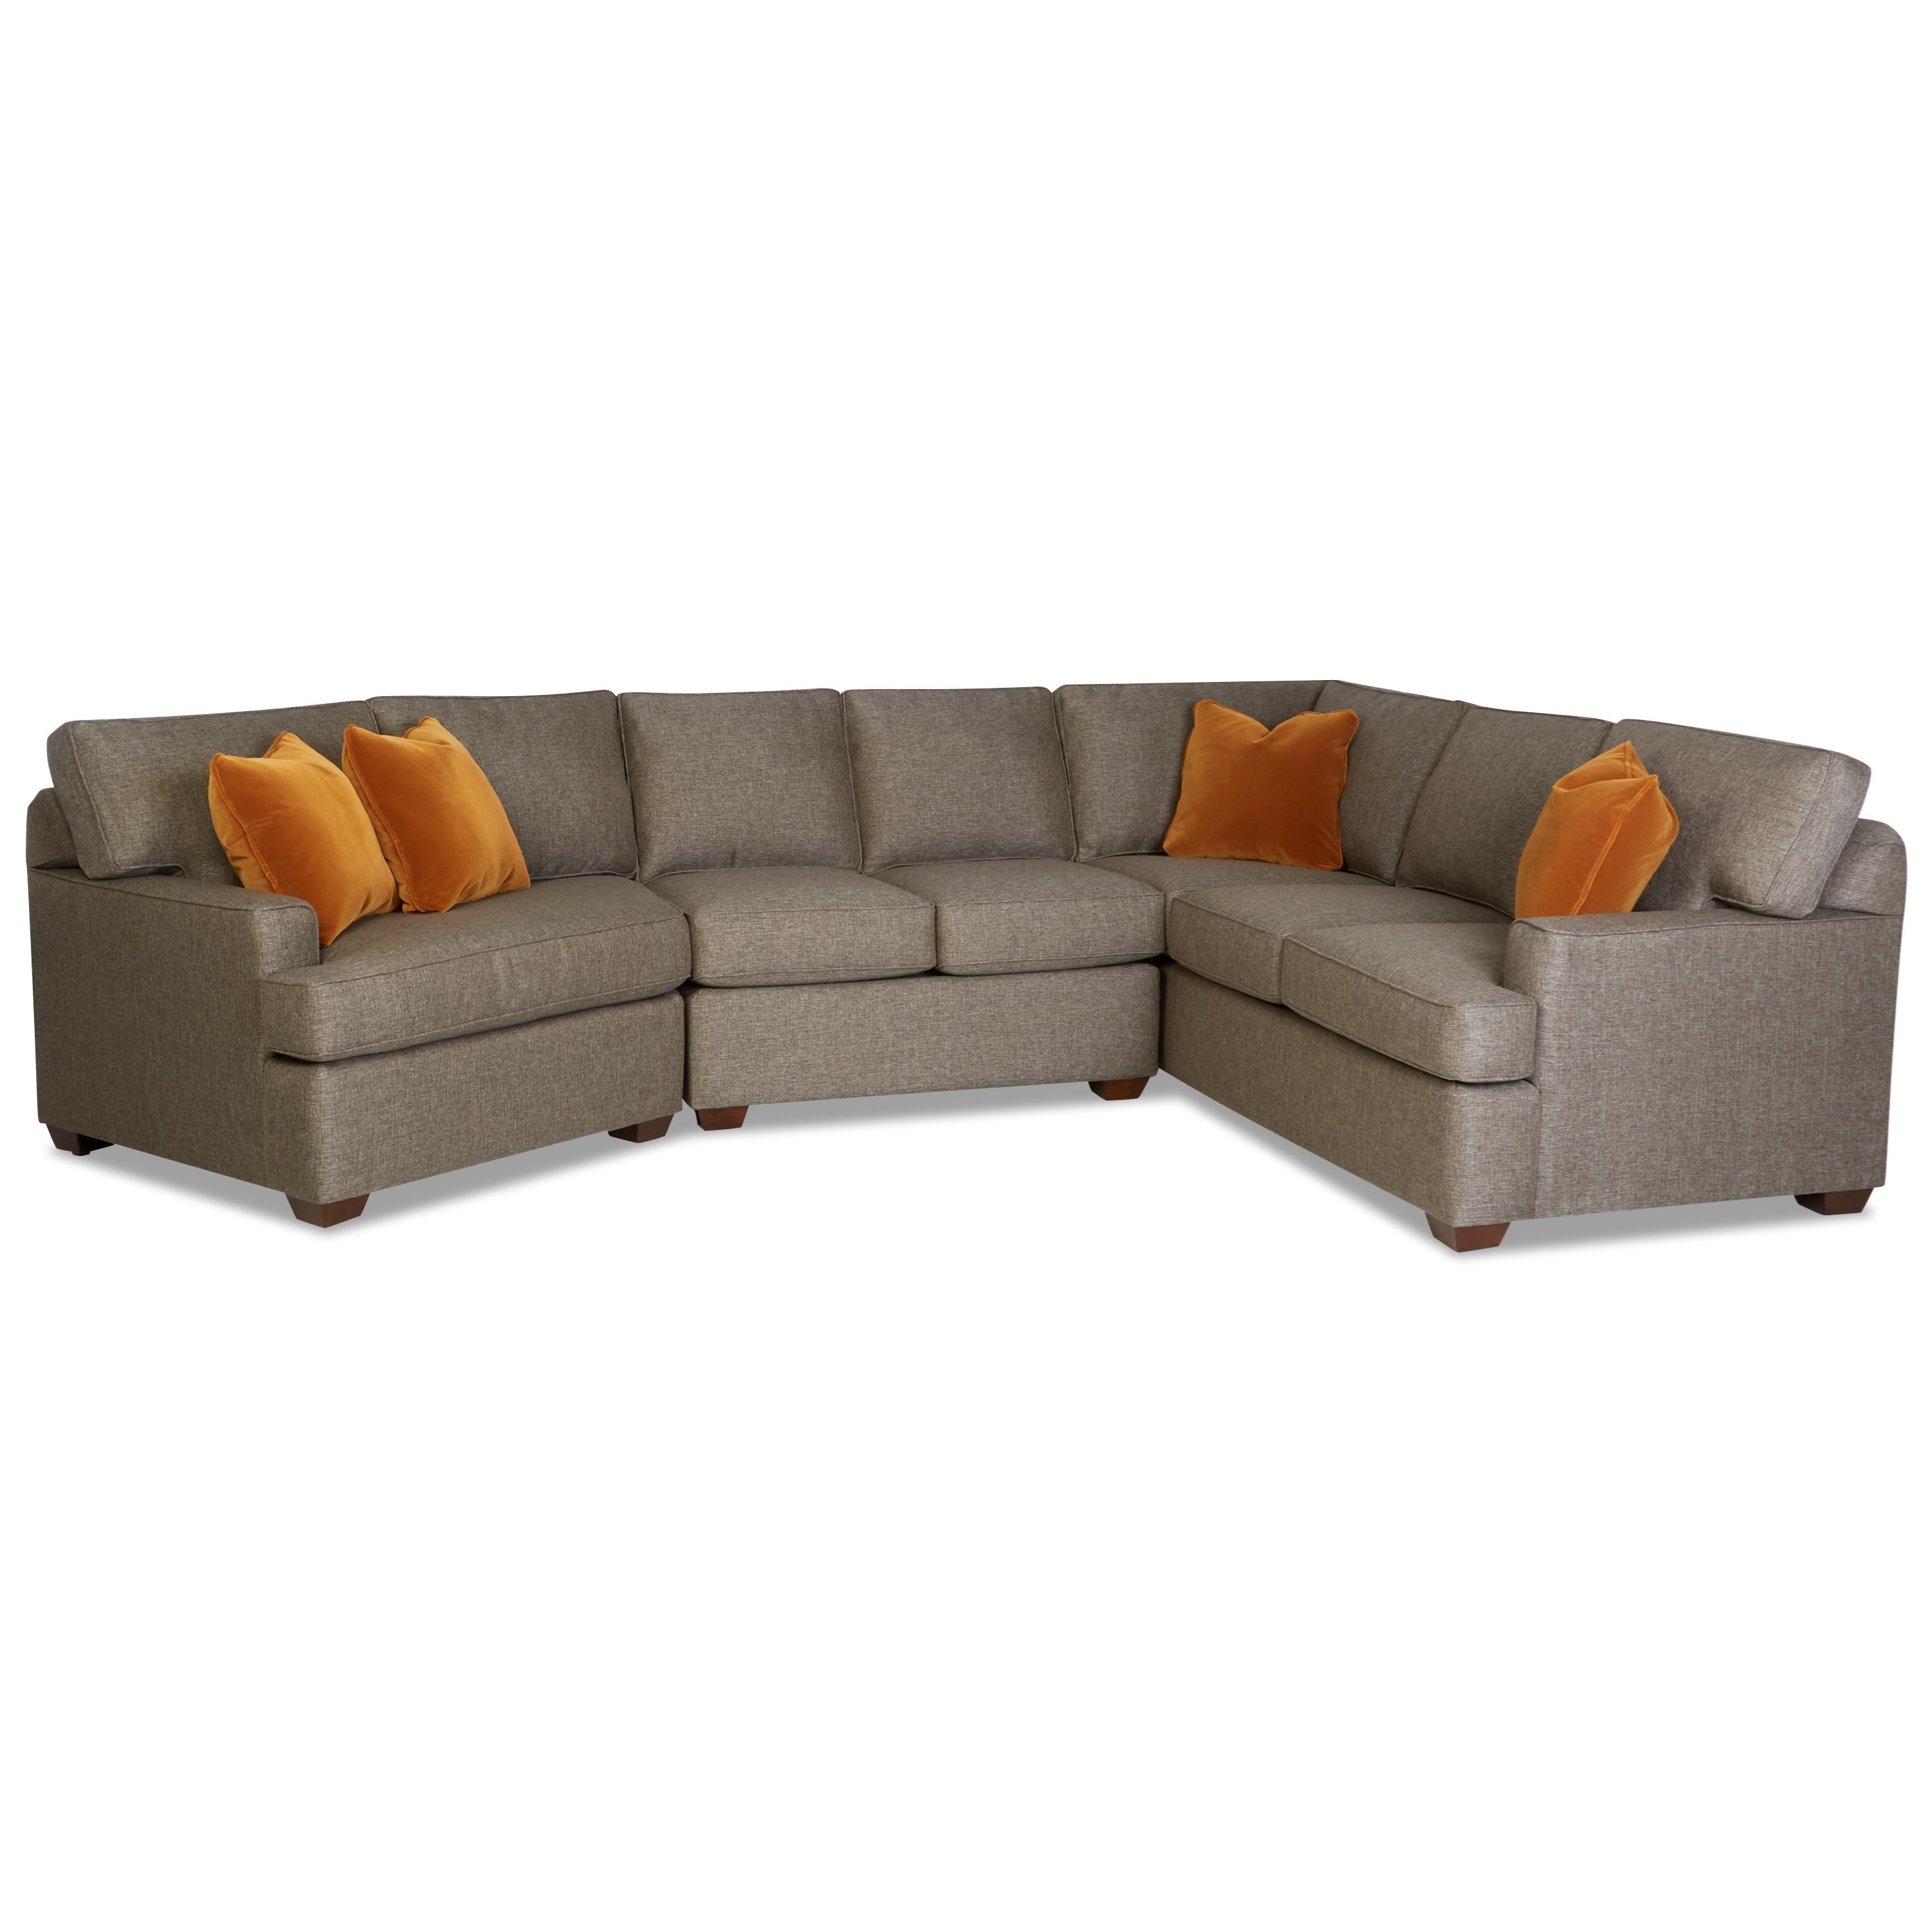 Pantego 3-Piece Sectional with Big Chair by Klaussner at Johnny Janosik